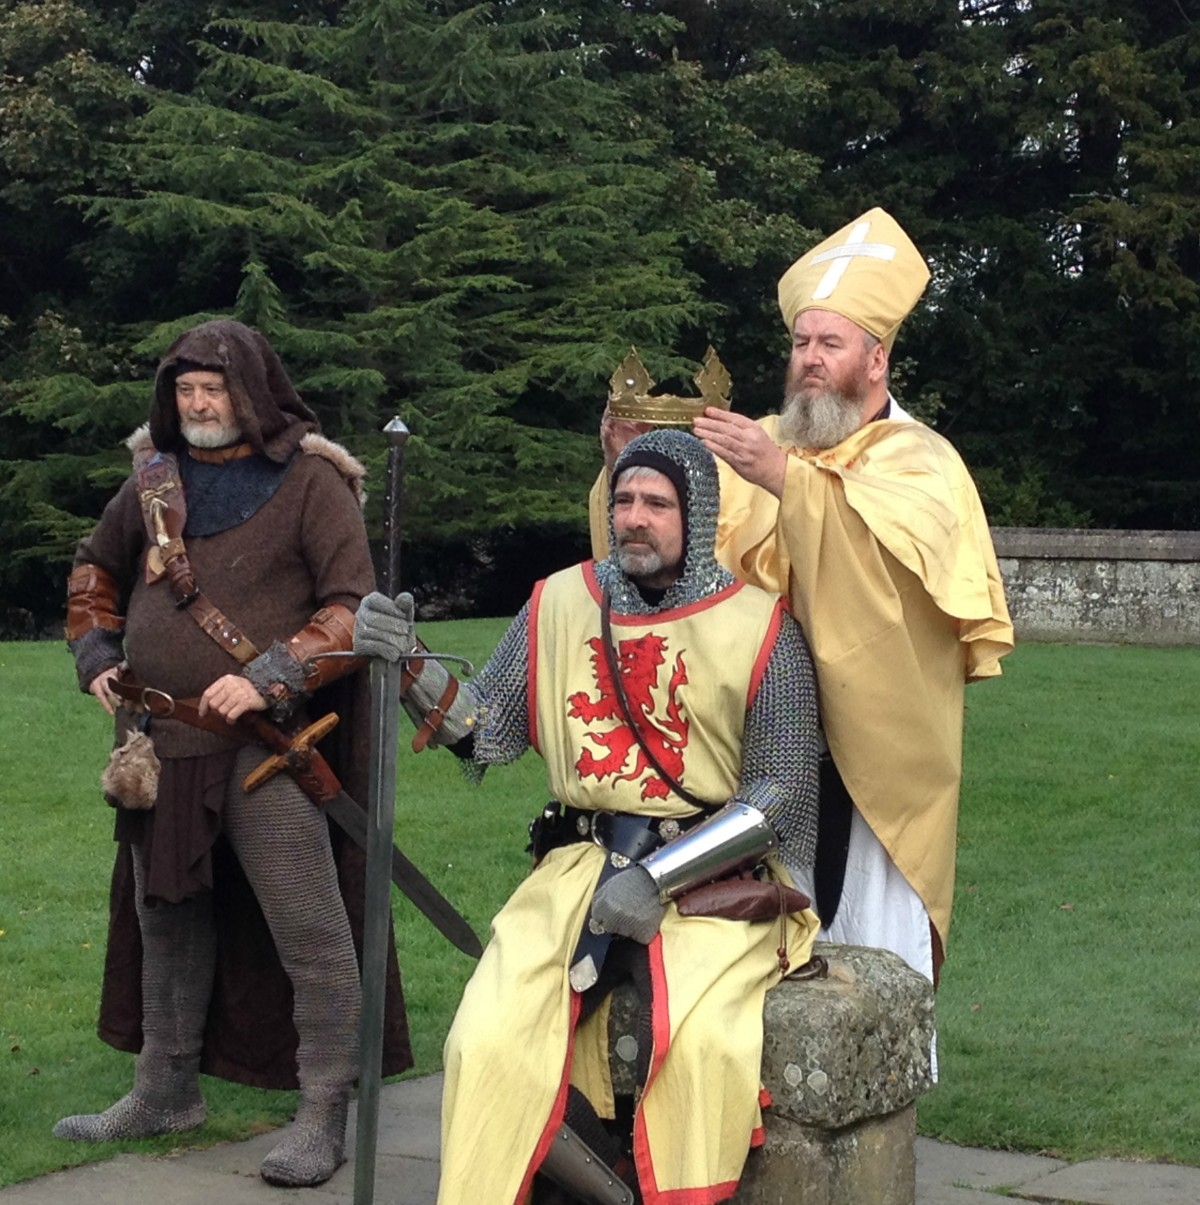 History enthusiasts unite as Scone Palace hosts the ultimate heritage day celebrating King Robert the Bruce